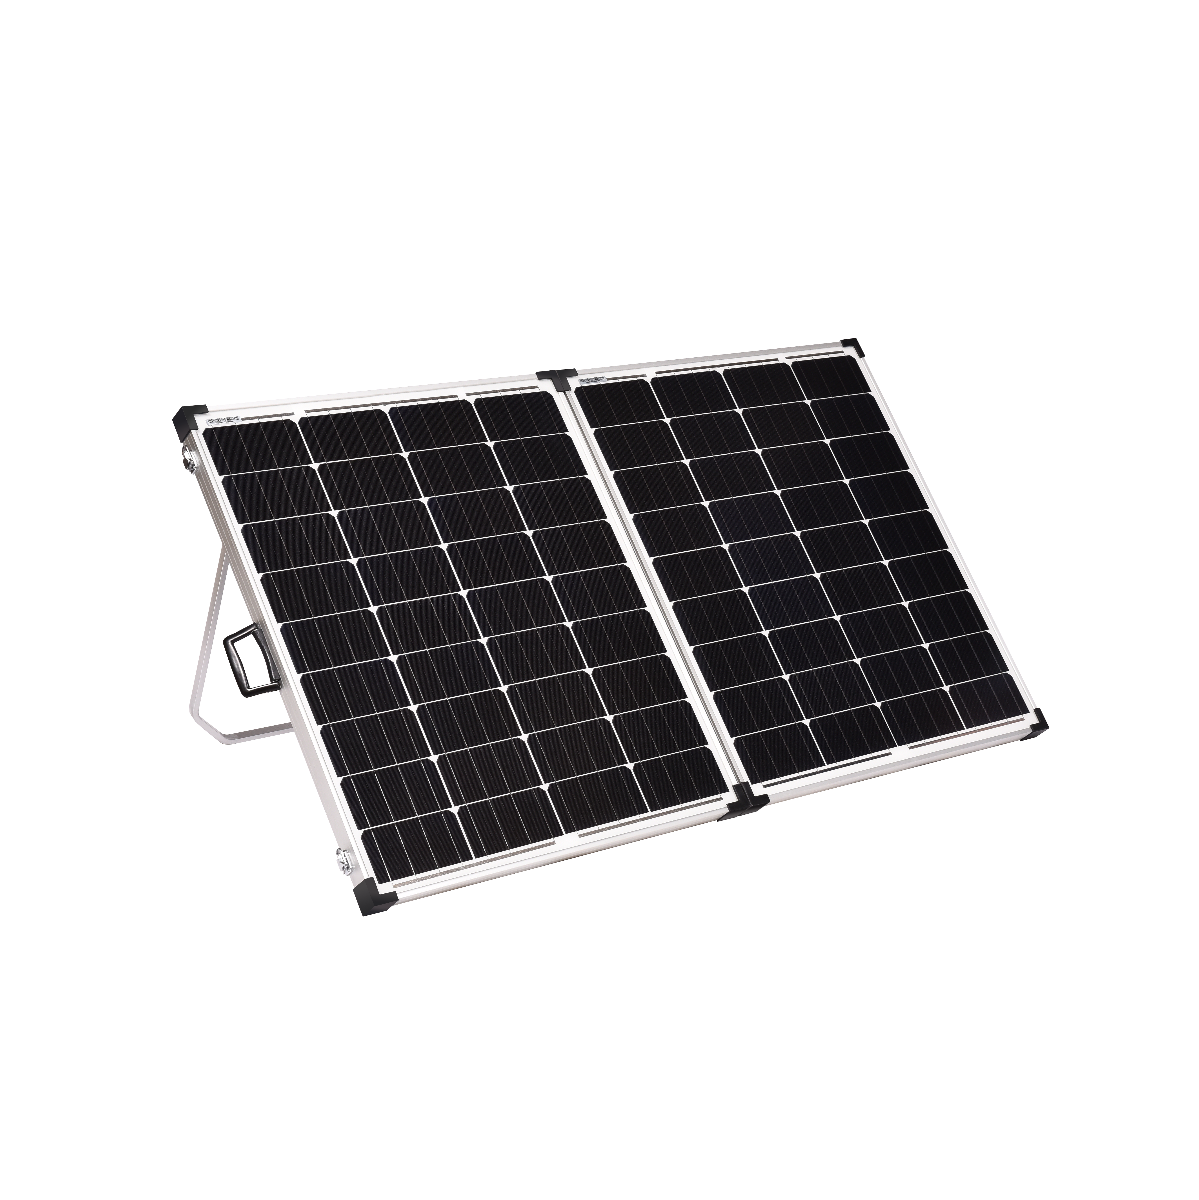 Maxray 220 Watts Monocrystalline Portable Folding Solar Panel